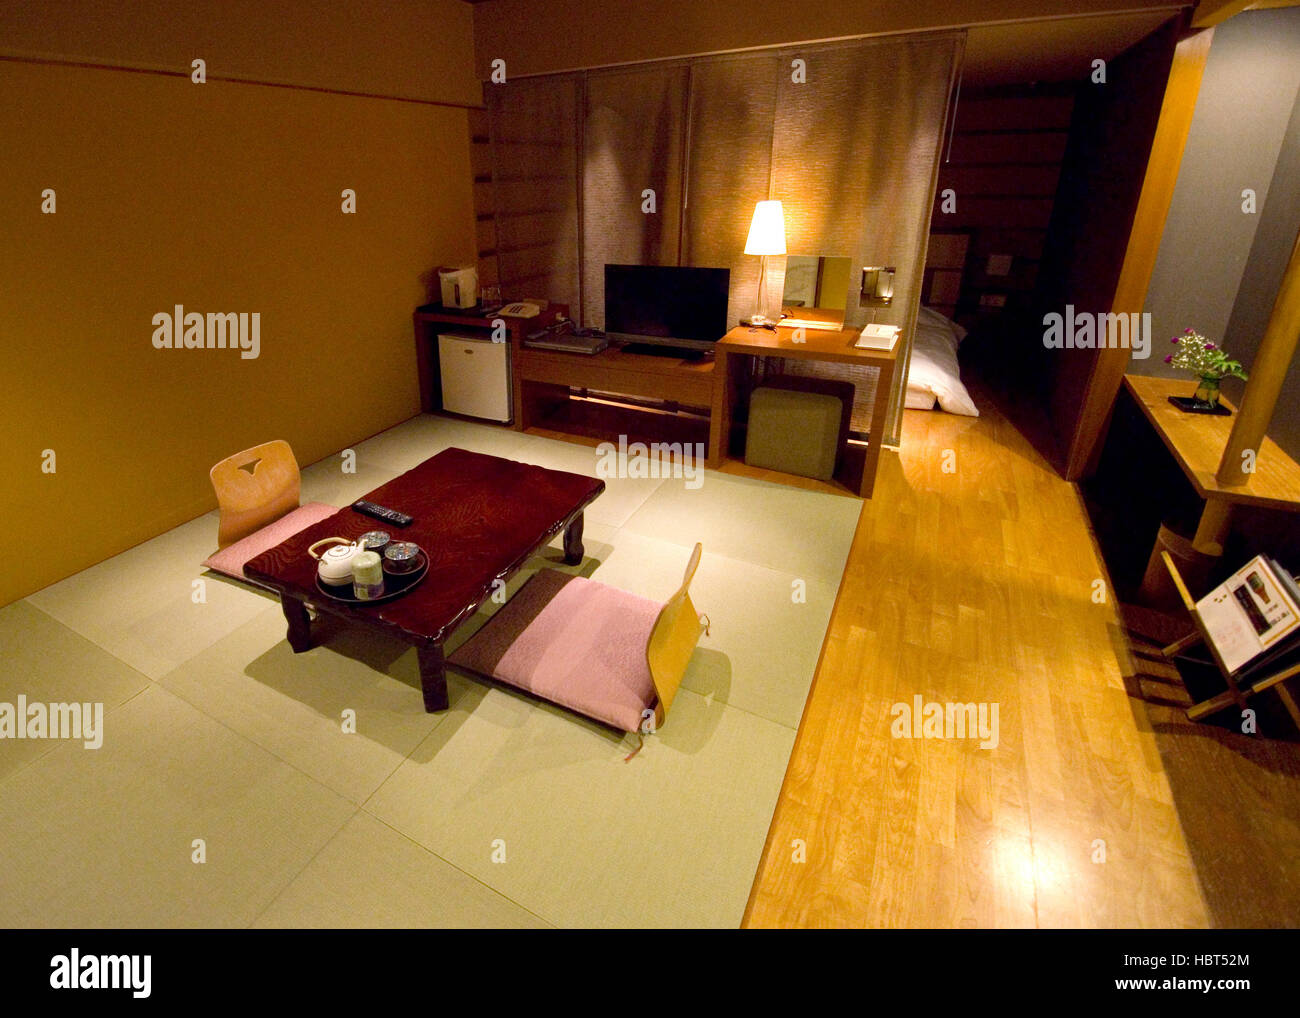 Admirable Traditional Japanese Style Hotel Room With Tatami Mats And Interior Design Ideas Philsoteloinfo